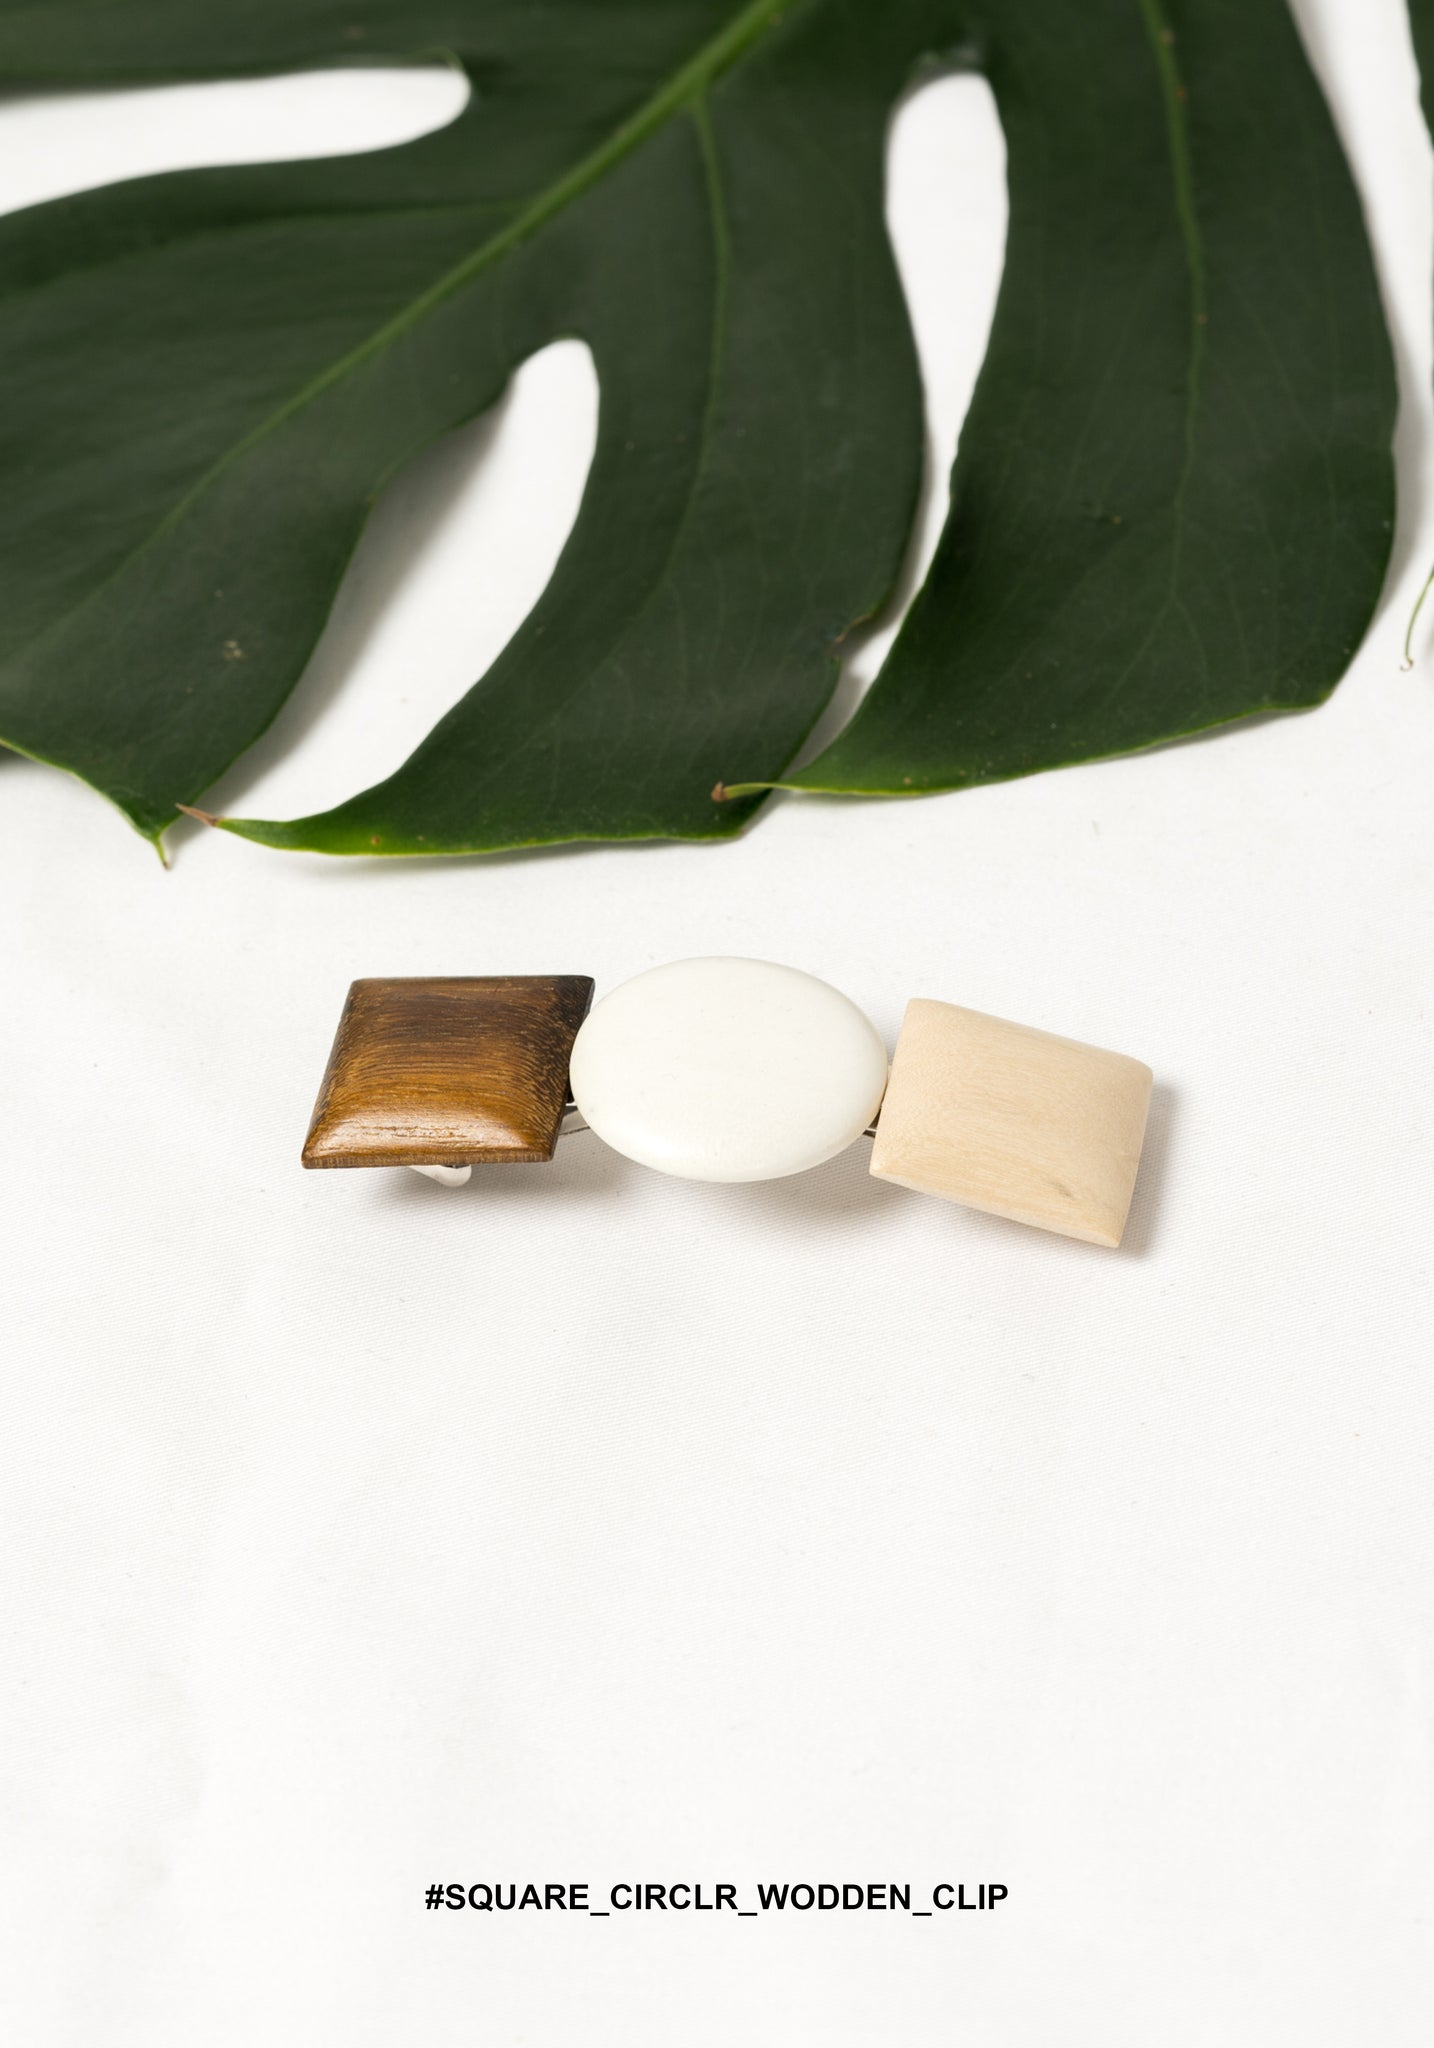 Square Circle Wooden Clip - whoami